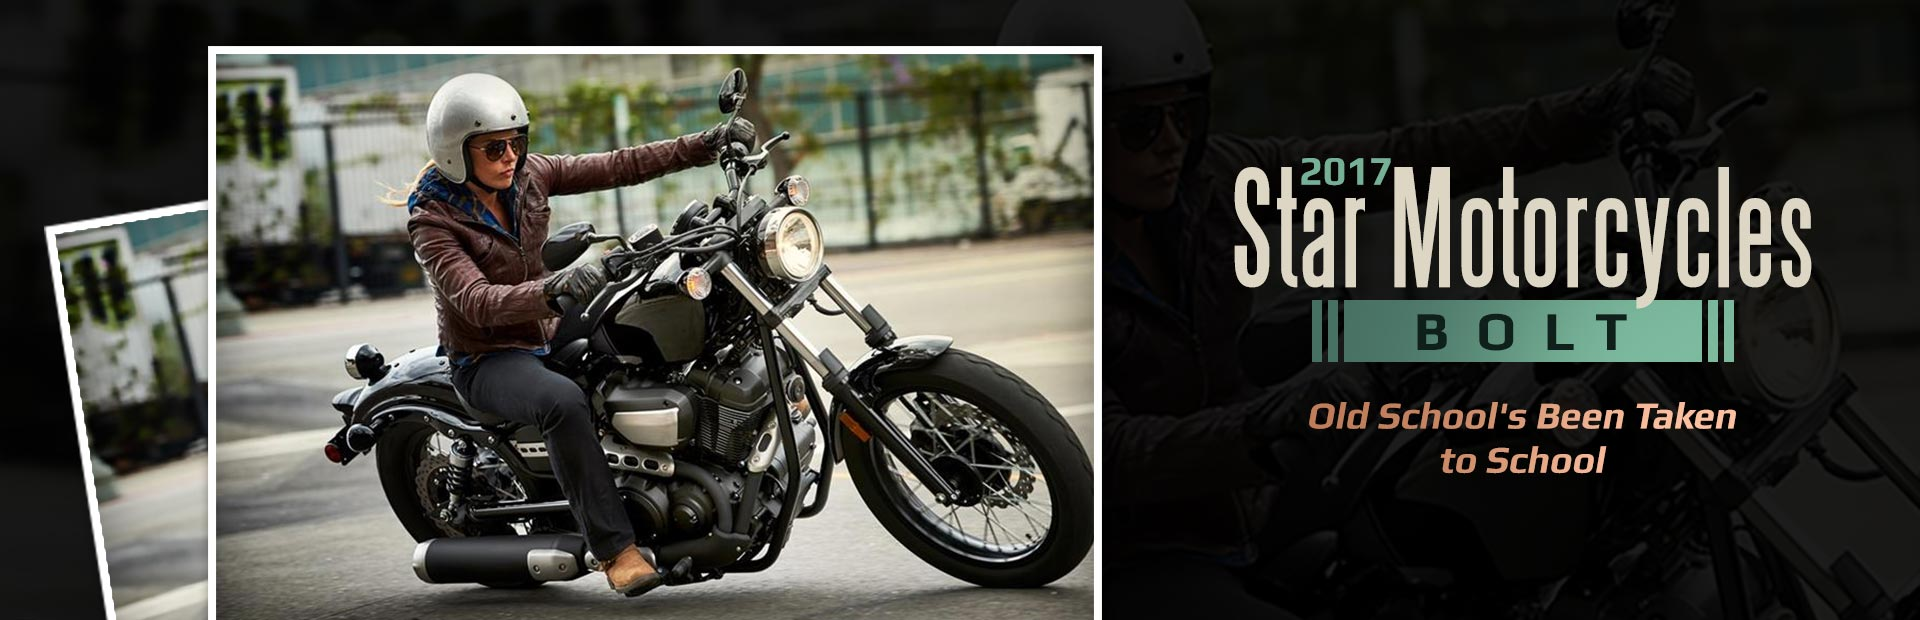 2017 Star Motorcycles Bolt: Click here to view the model.